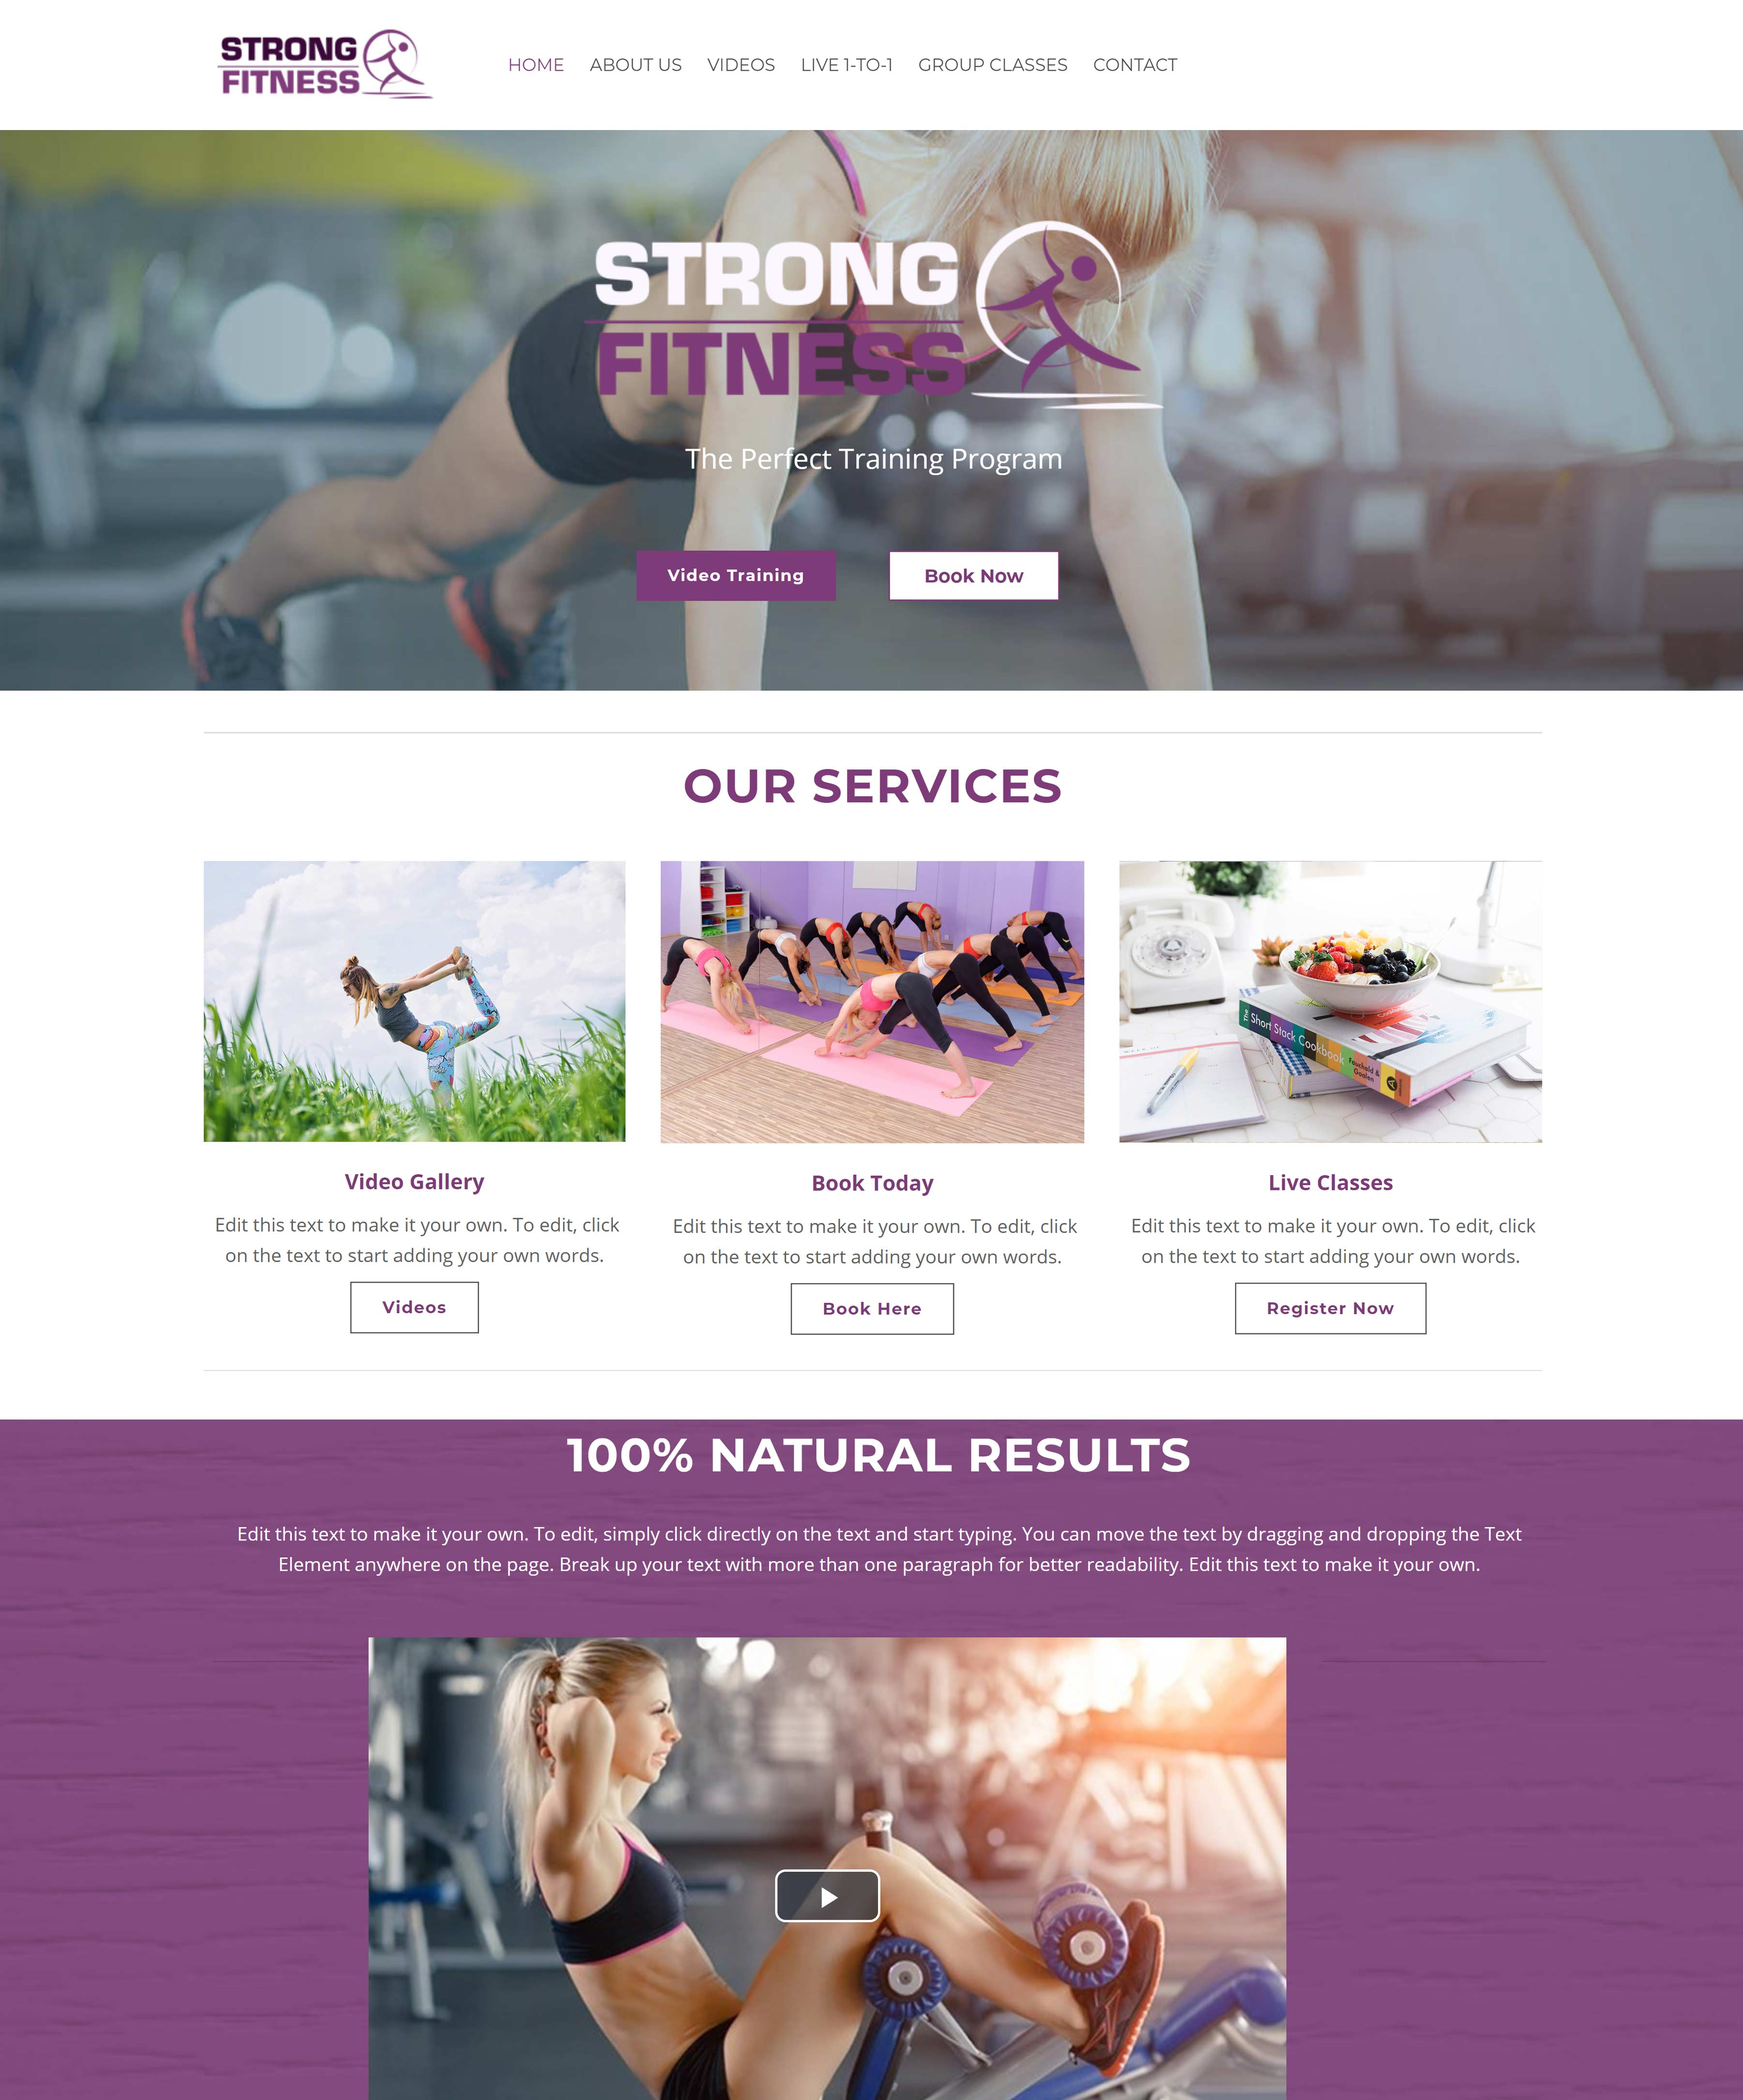 All-In-One Online Fitness Studio Website - Strong Fitness Home Page Example